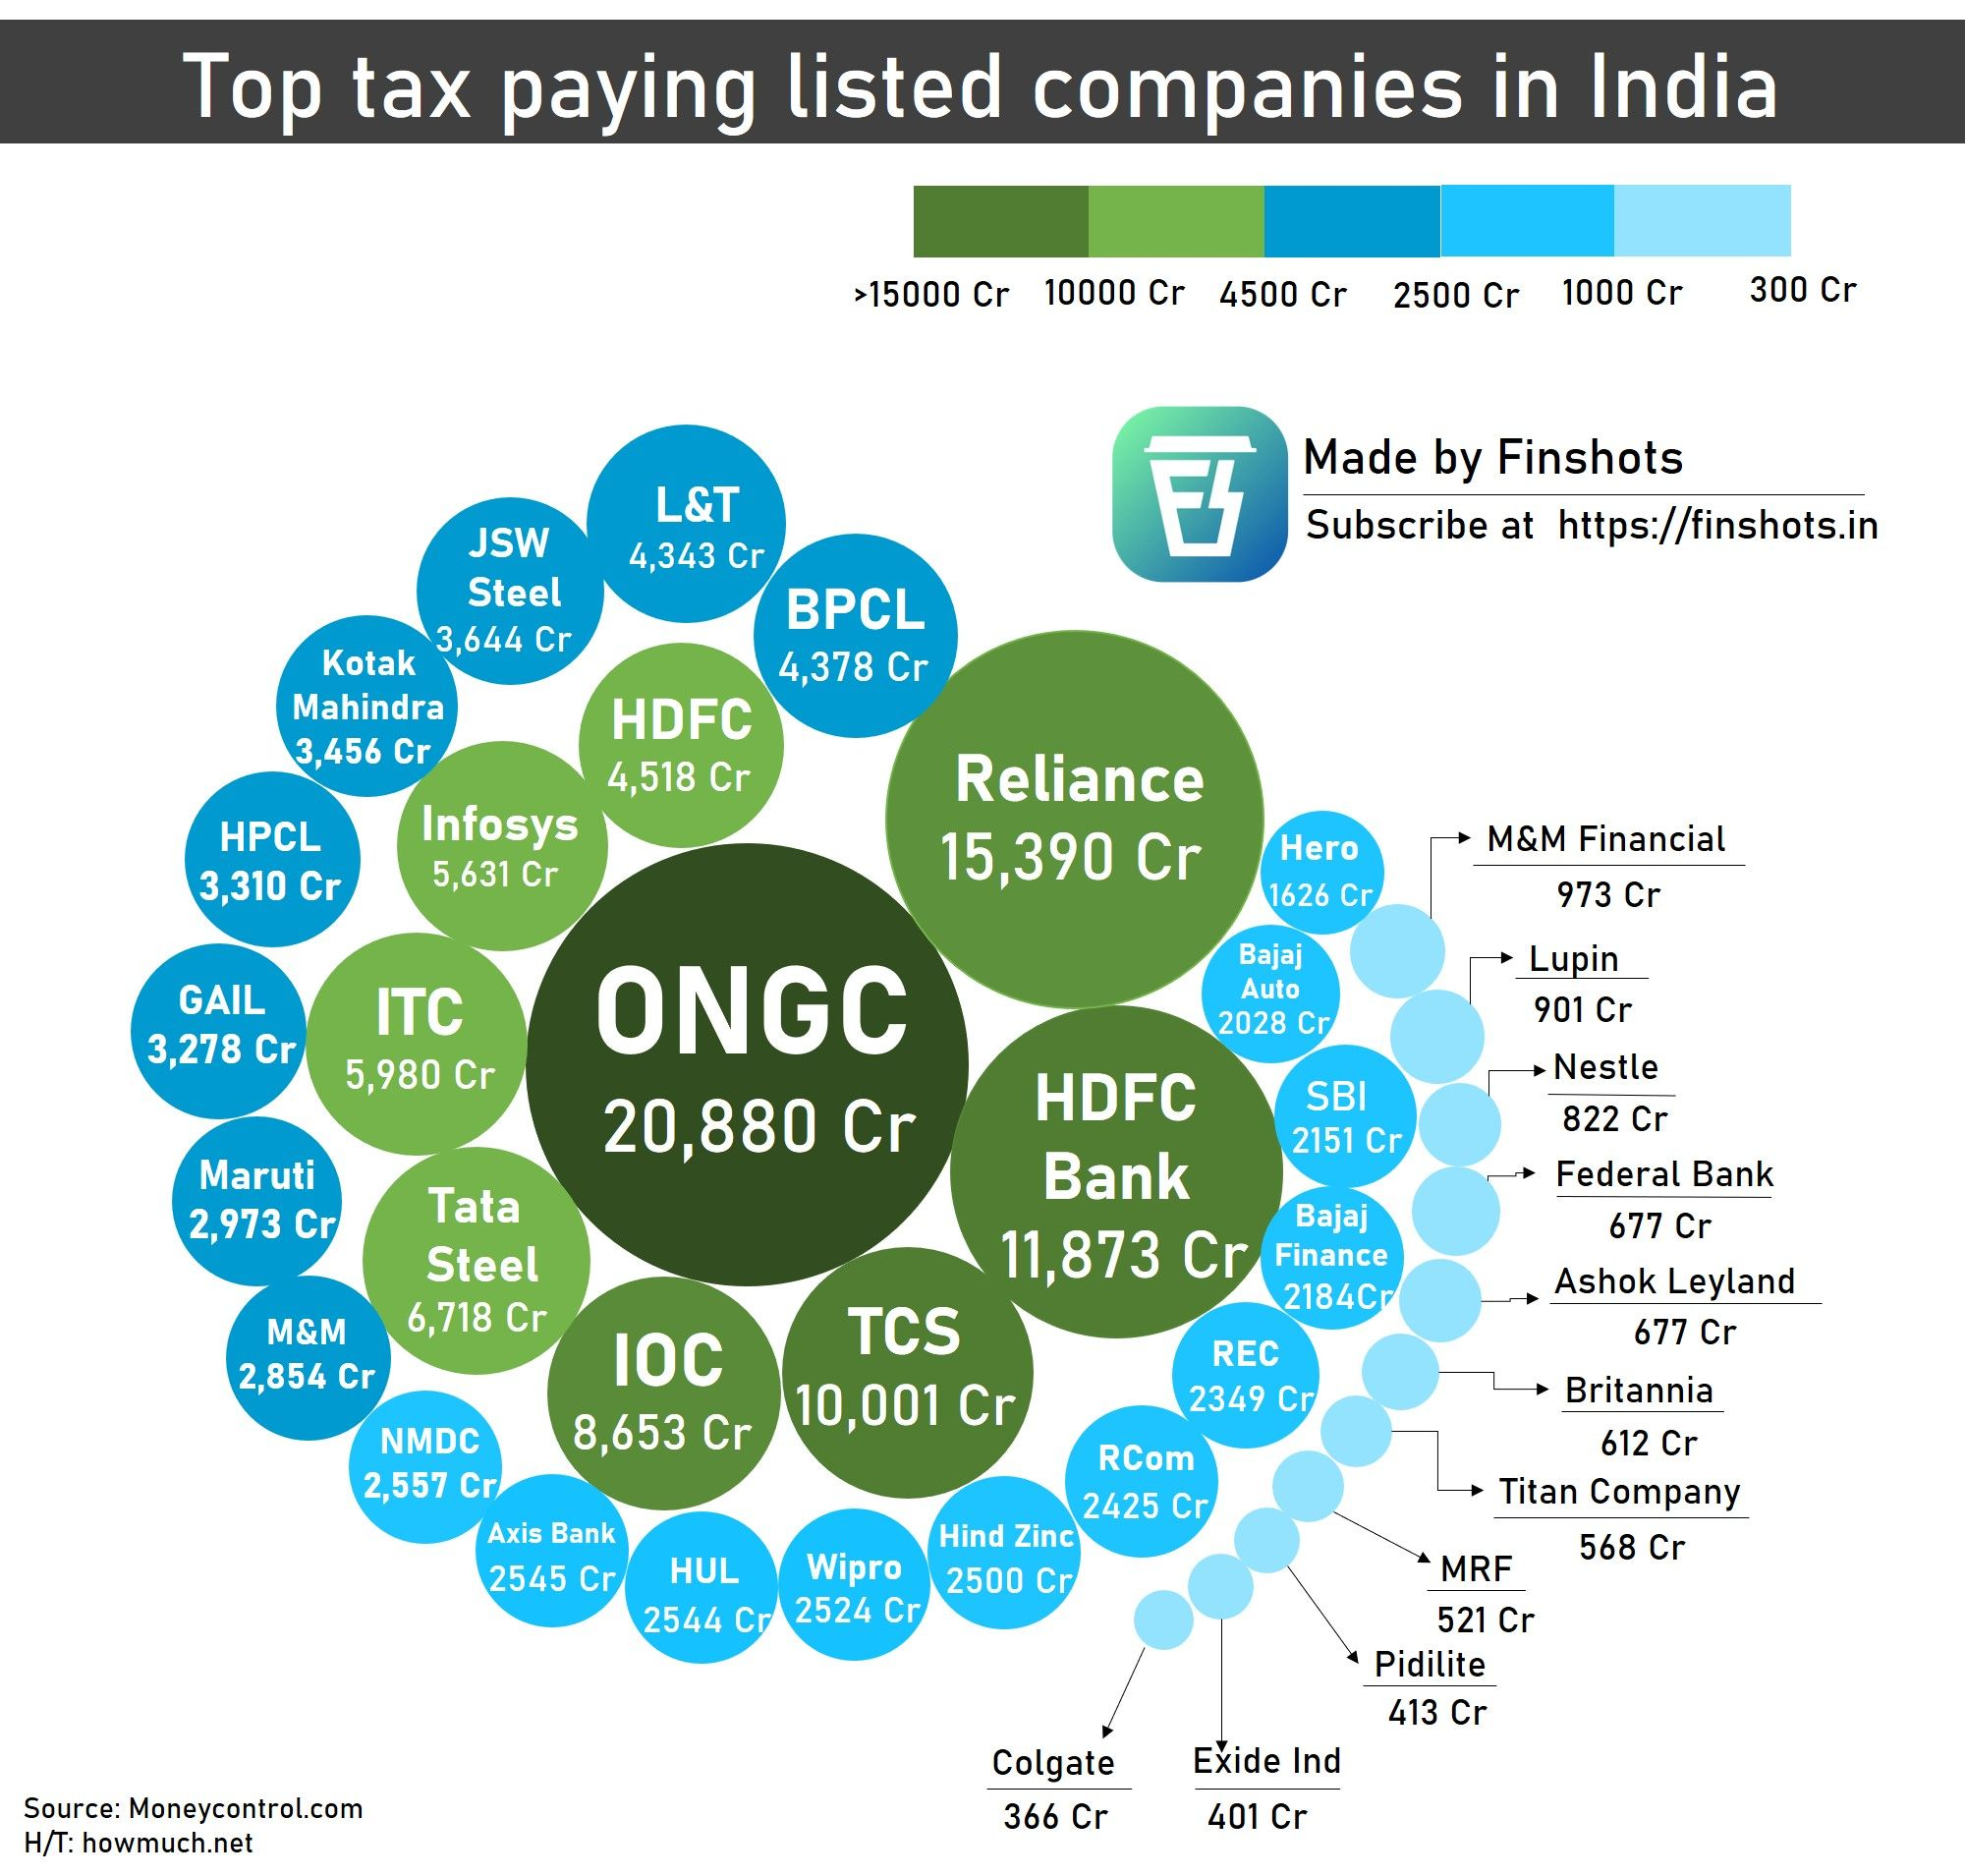 Top tax-paying companies in India